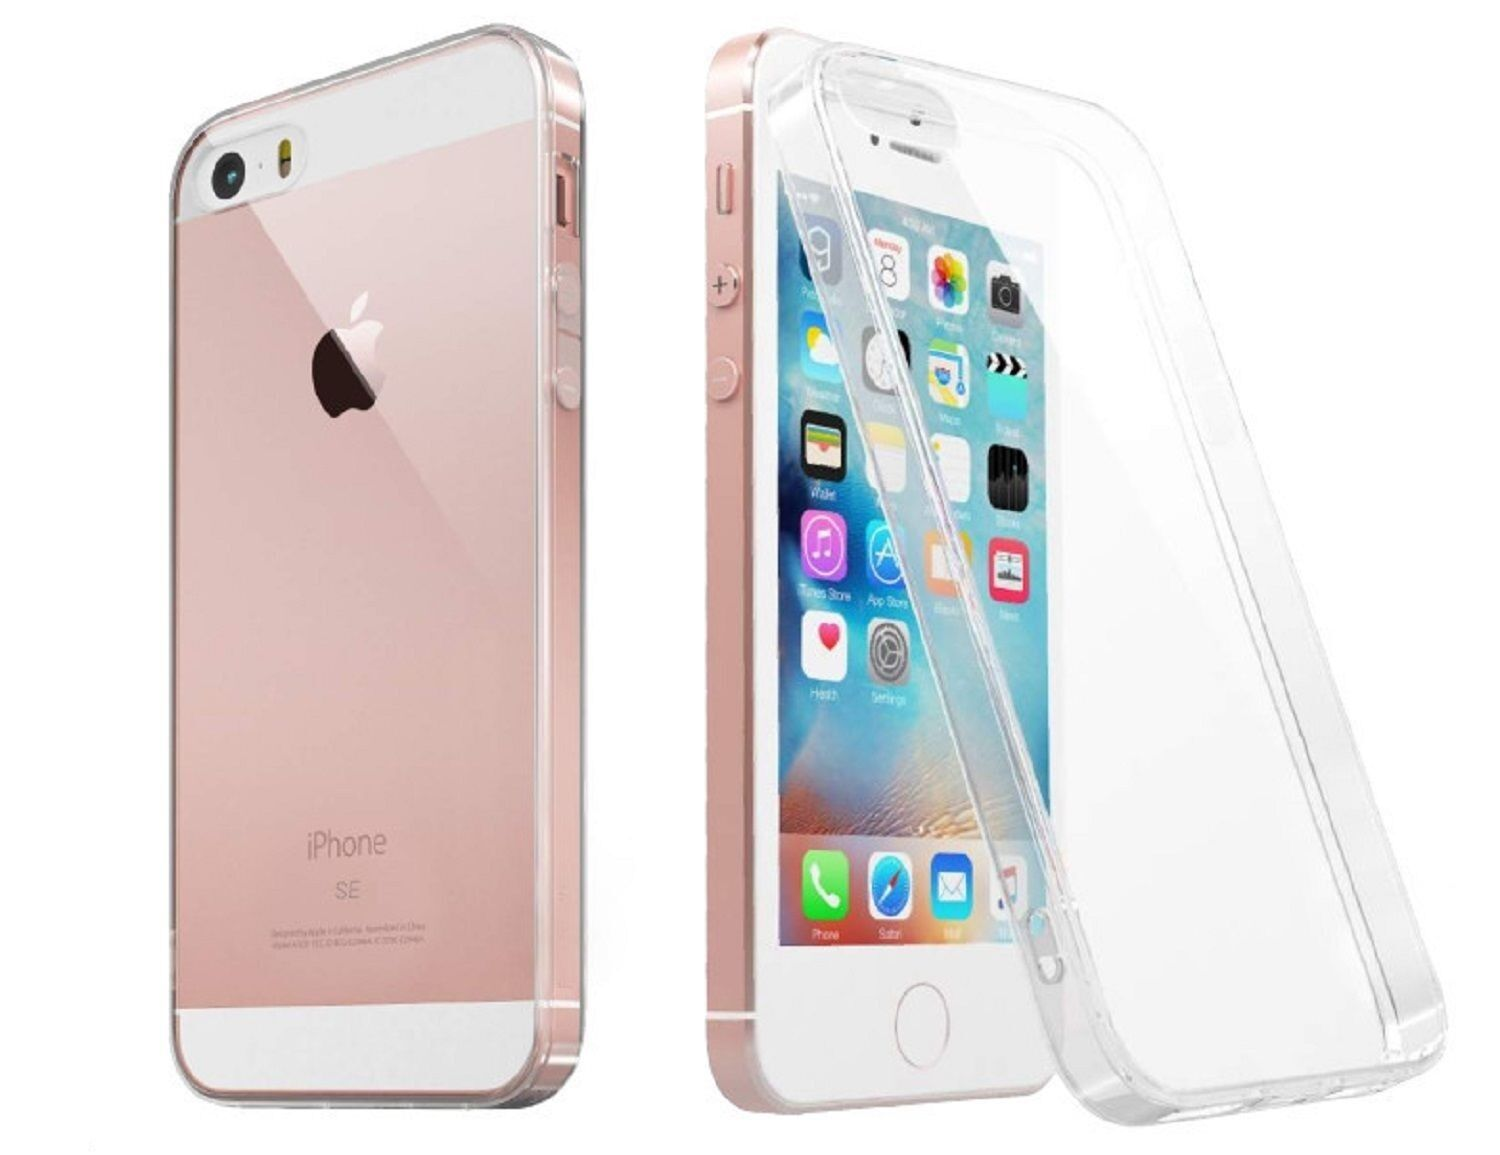 For iPhone SE 2016 Case Clear Rubber Shockproof Protective iPhone 5 Cover Cases, Covers & Skins